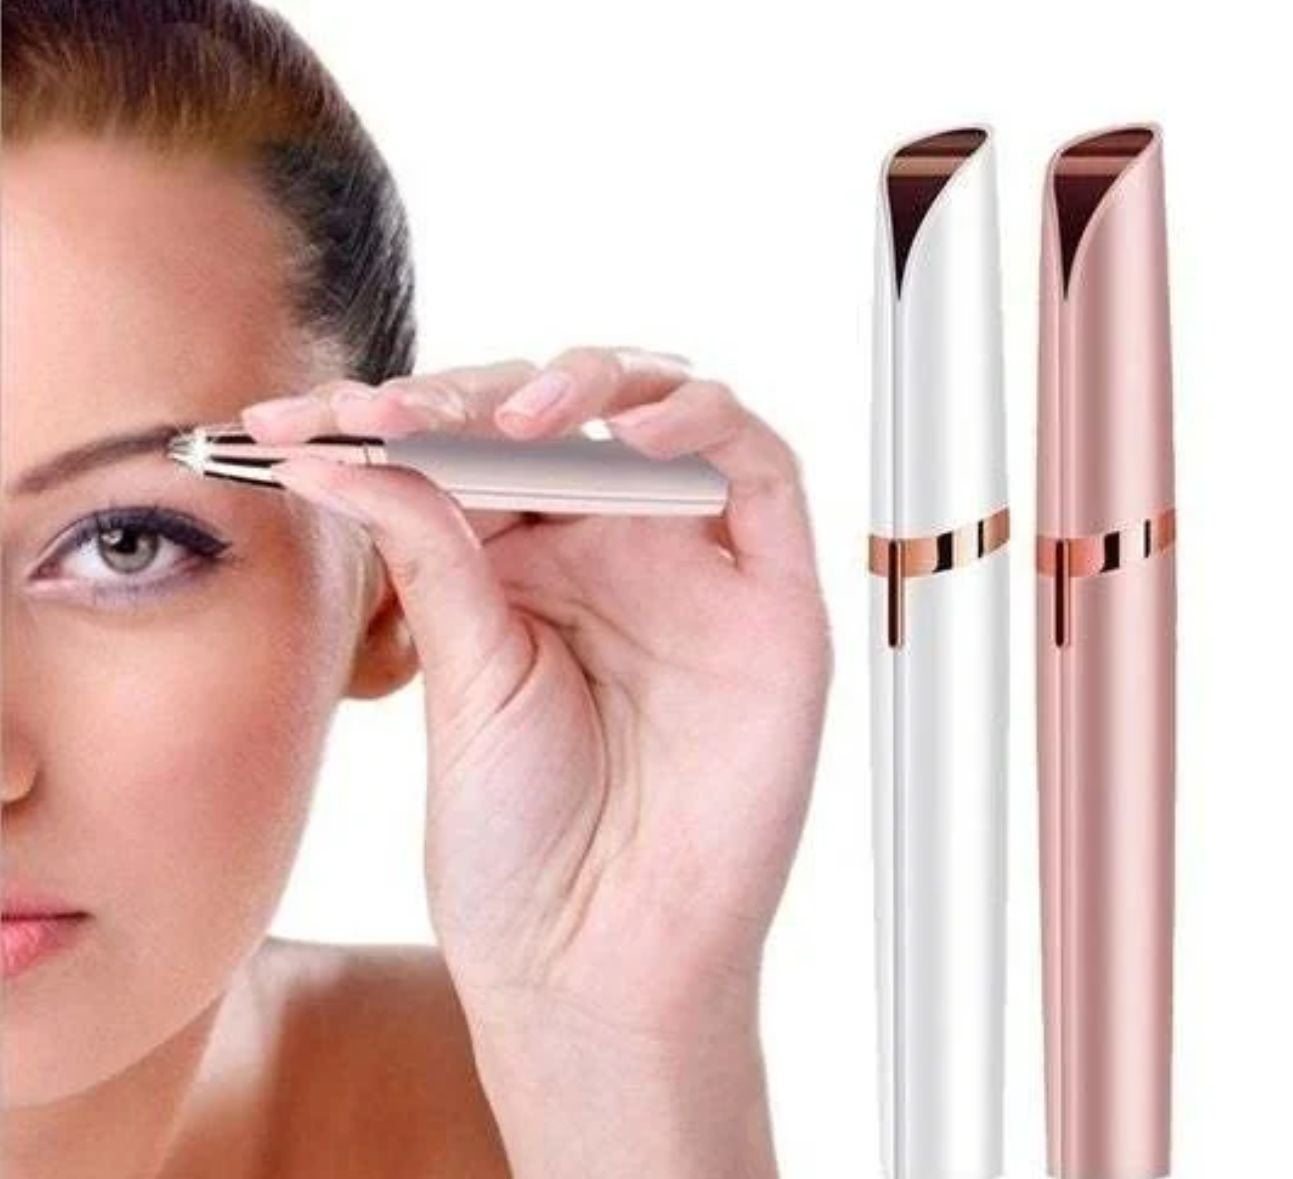 Face and Eyebrow Hair Remover